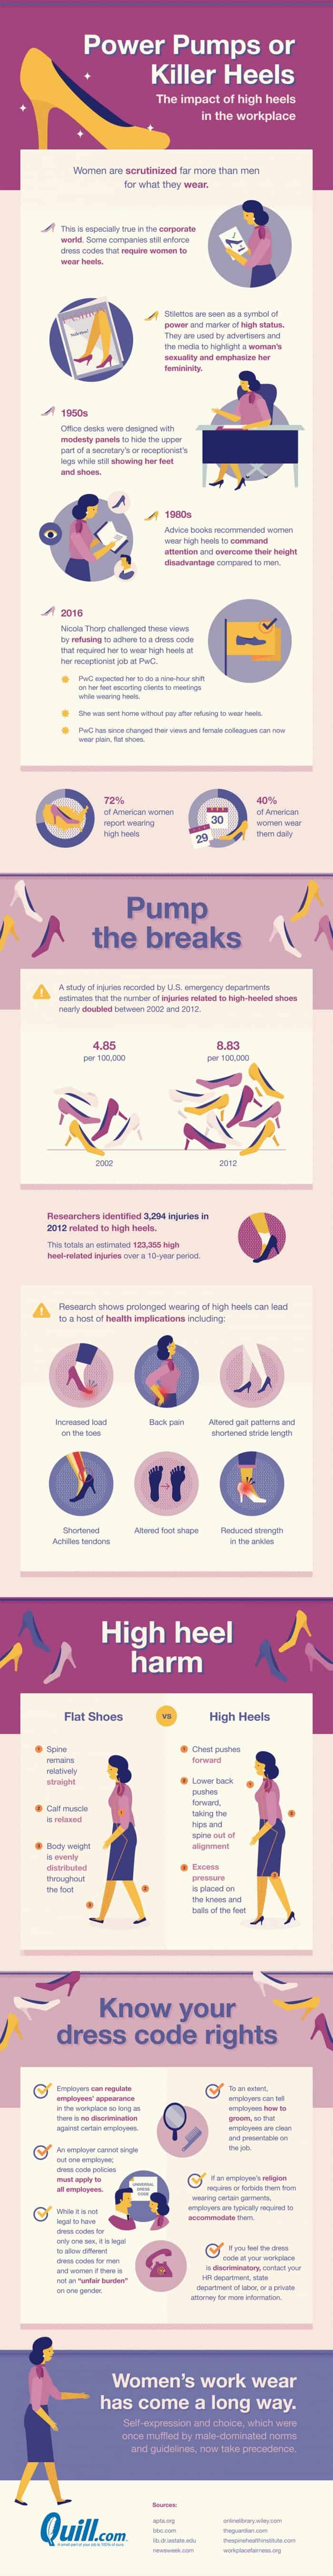 impact of wearing high heels at work, statistics, history and health effects infographic